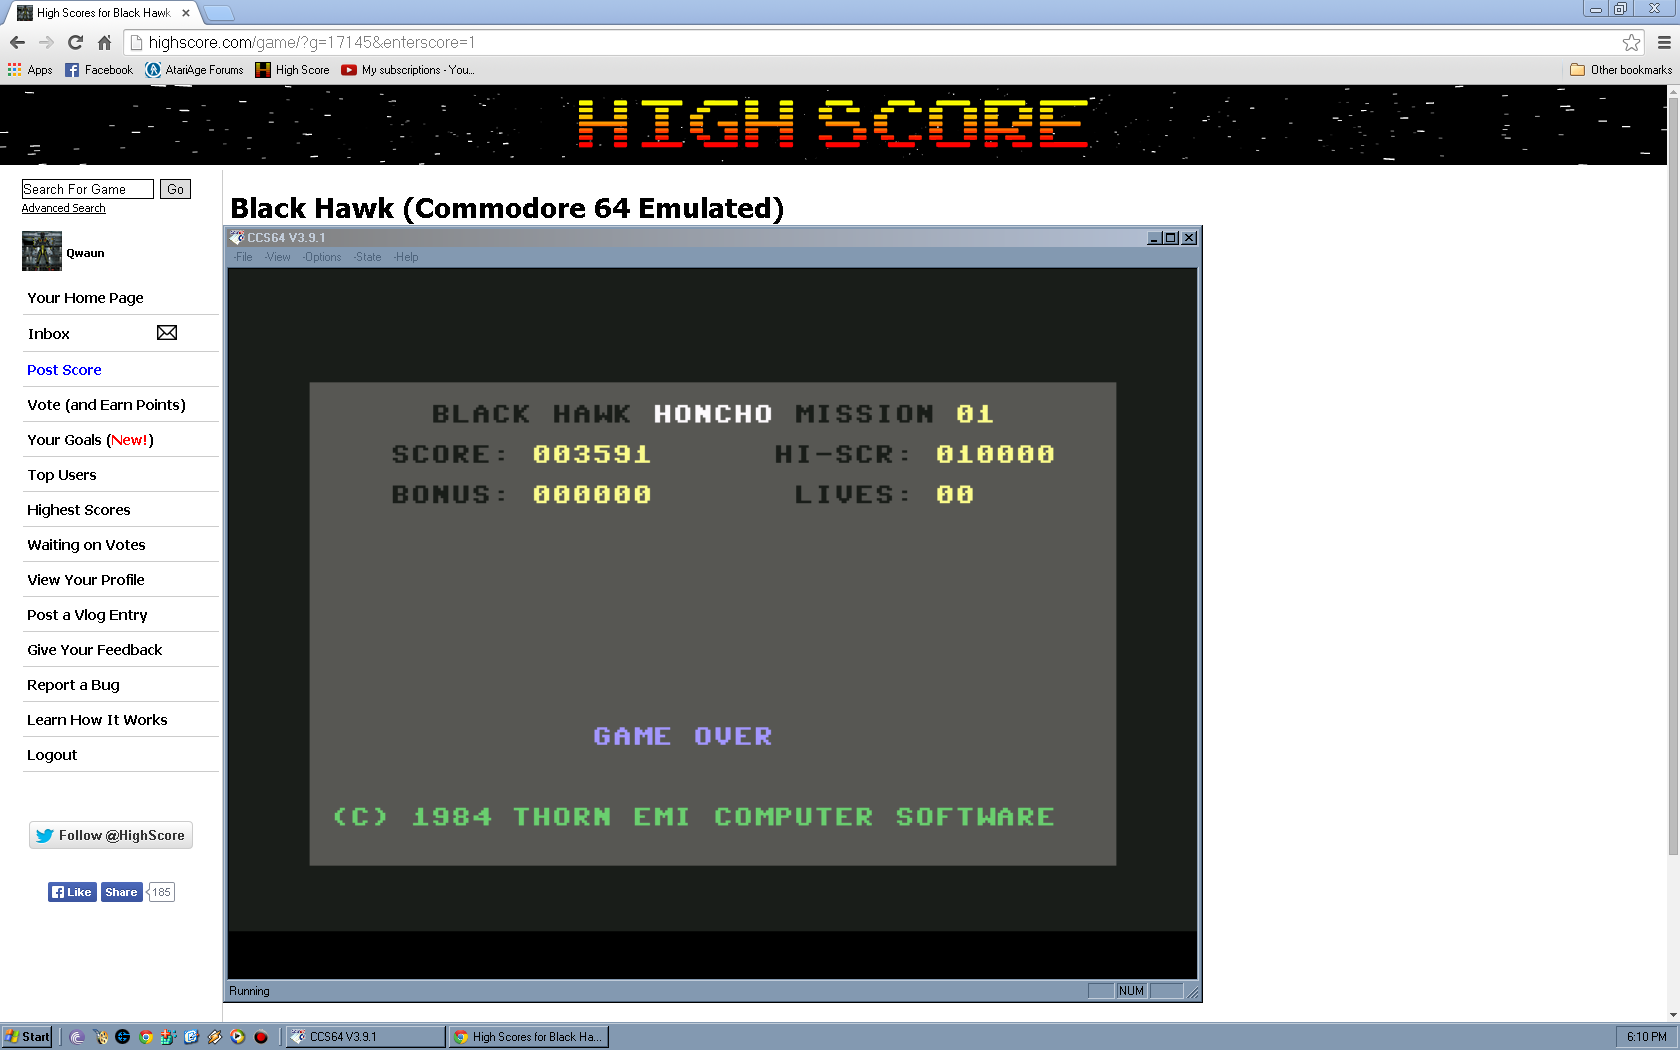 Qwaun: Black Hawk (Commodore 64 Emulated) 3,591 points on 2014-05-02 12:00:04